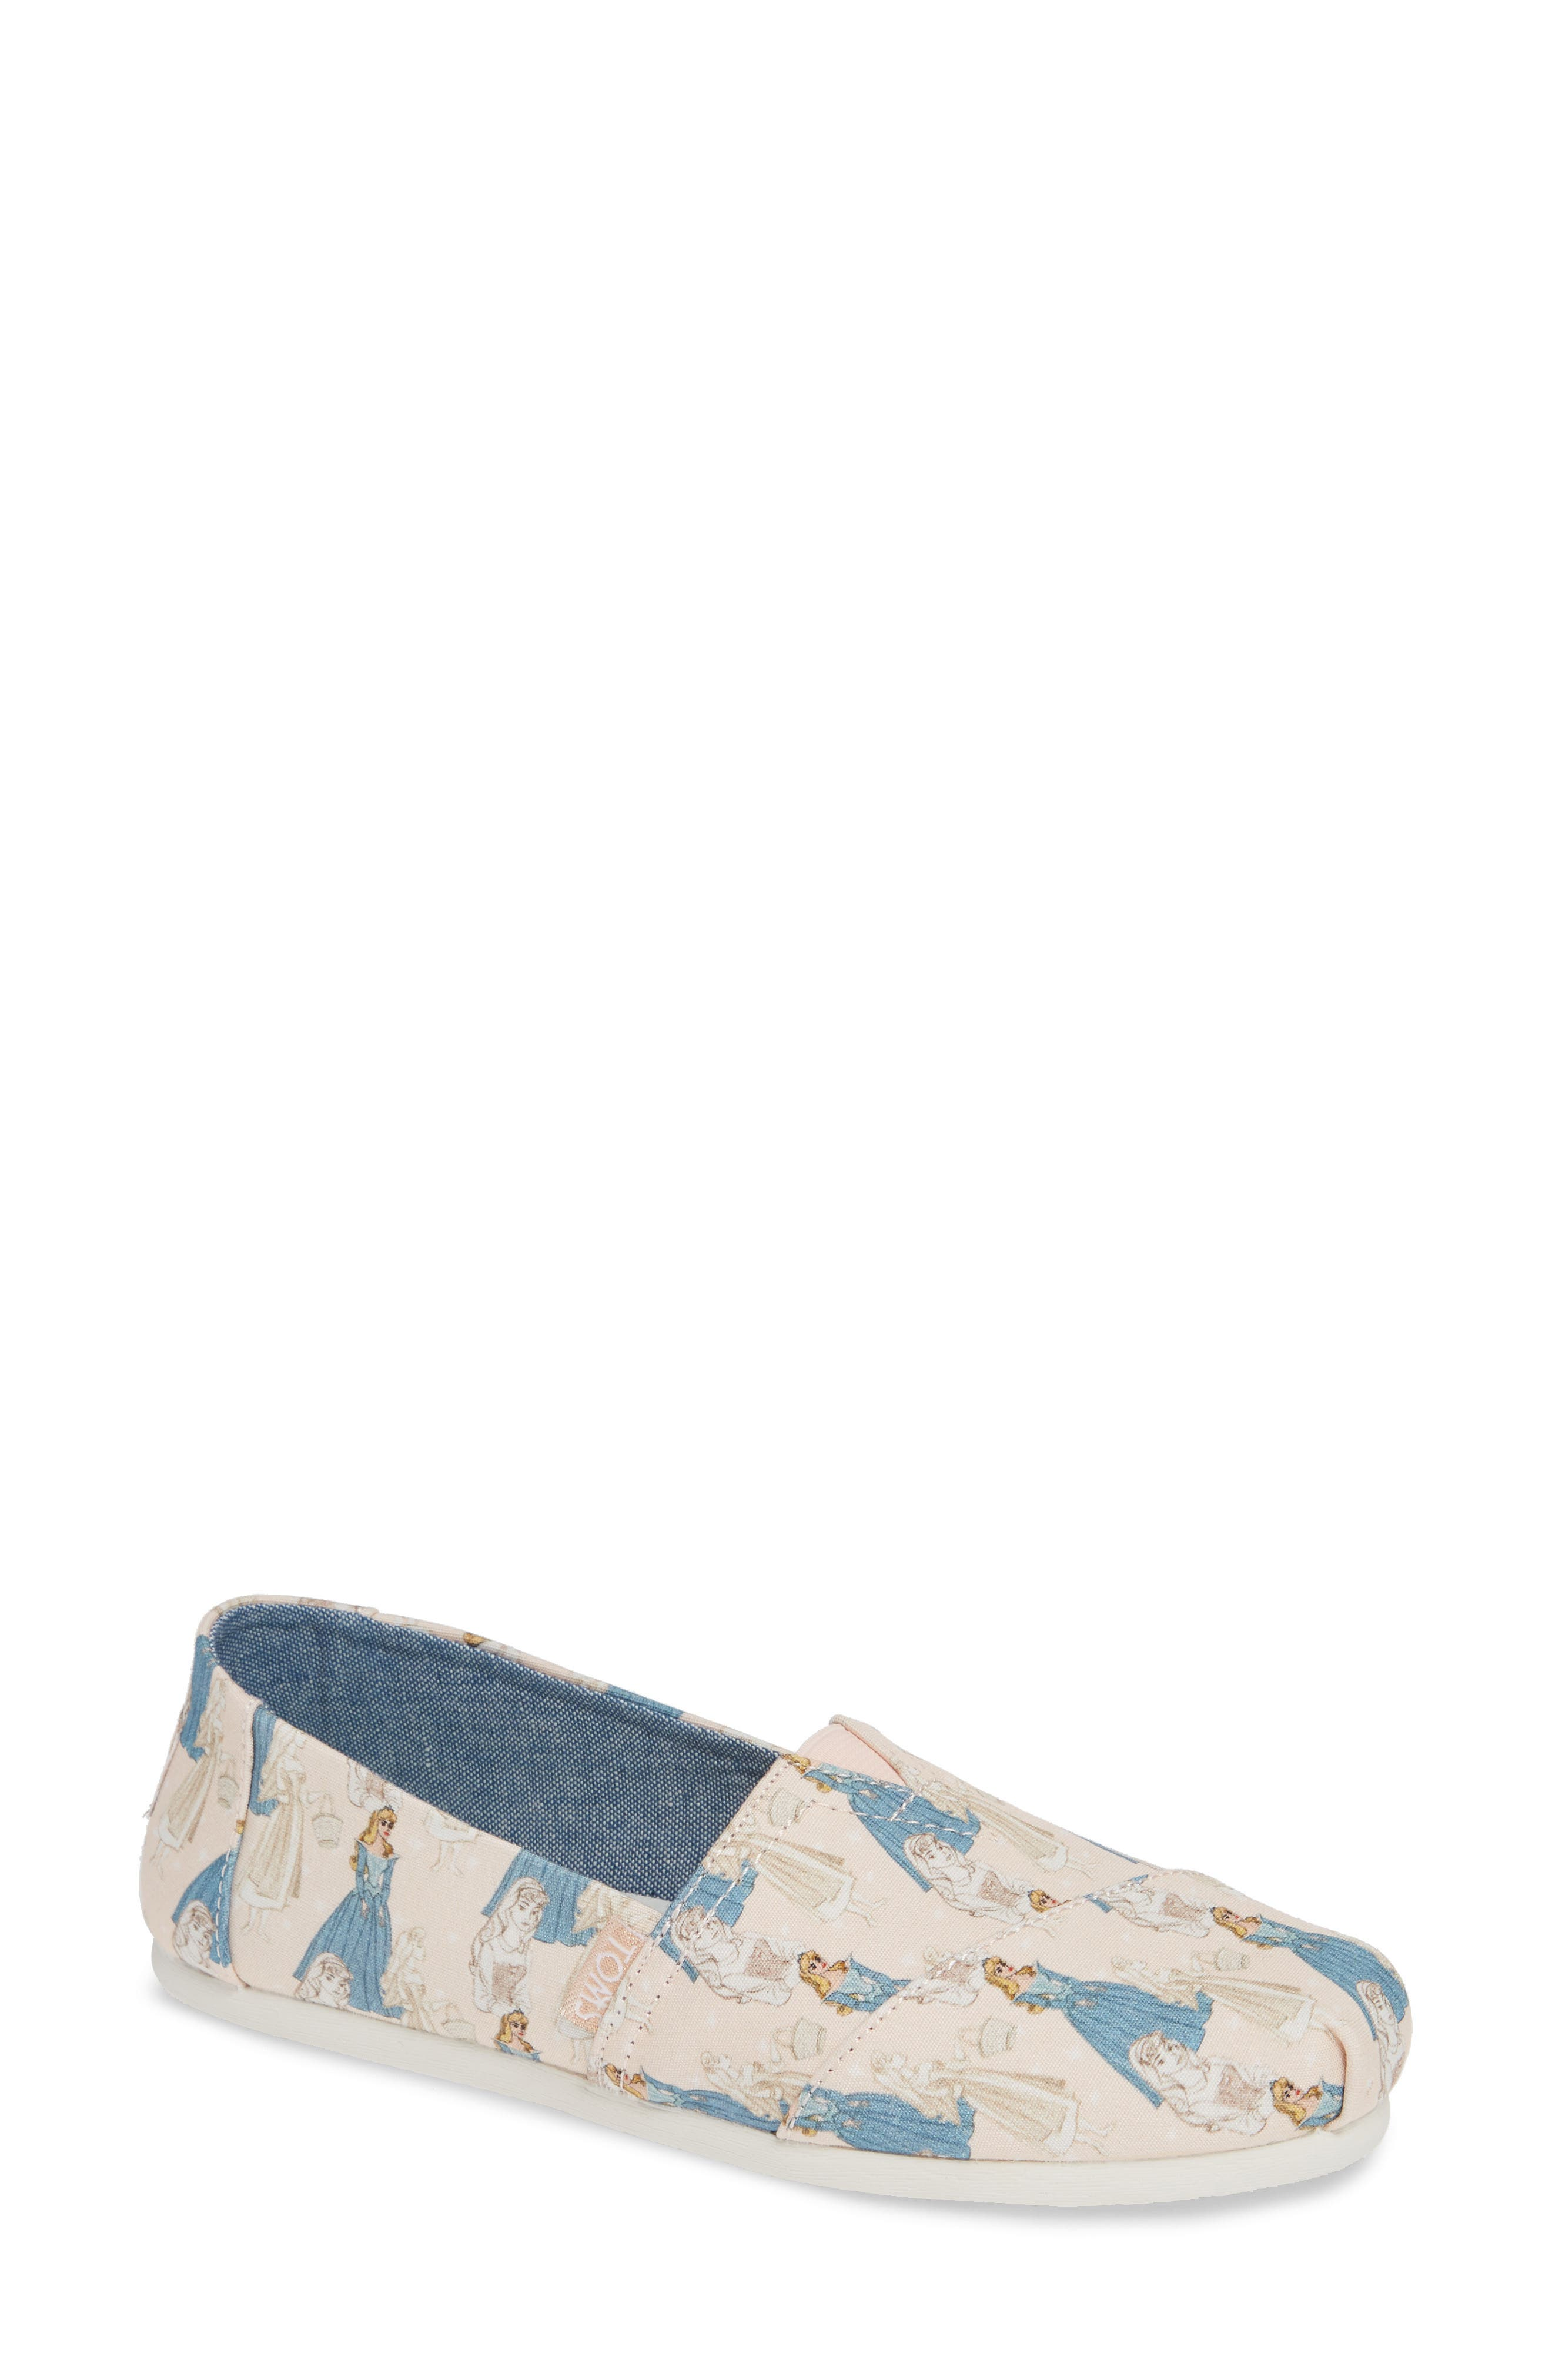 X DISNEY GRAPHIC ALPARGATA SLIP-ON